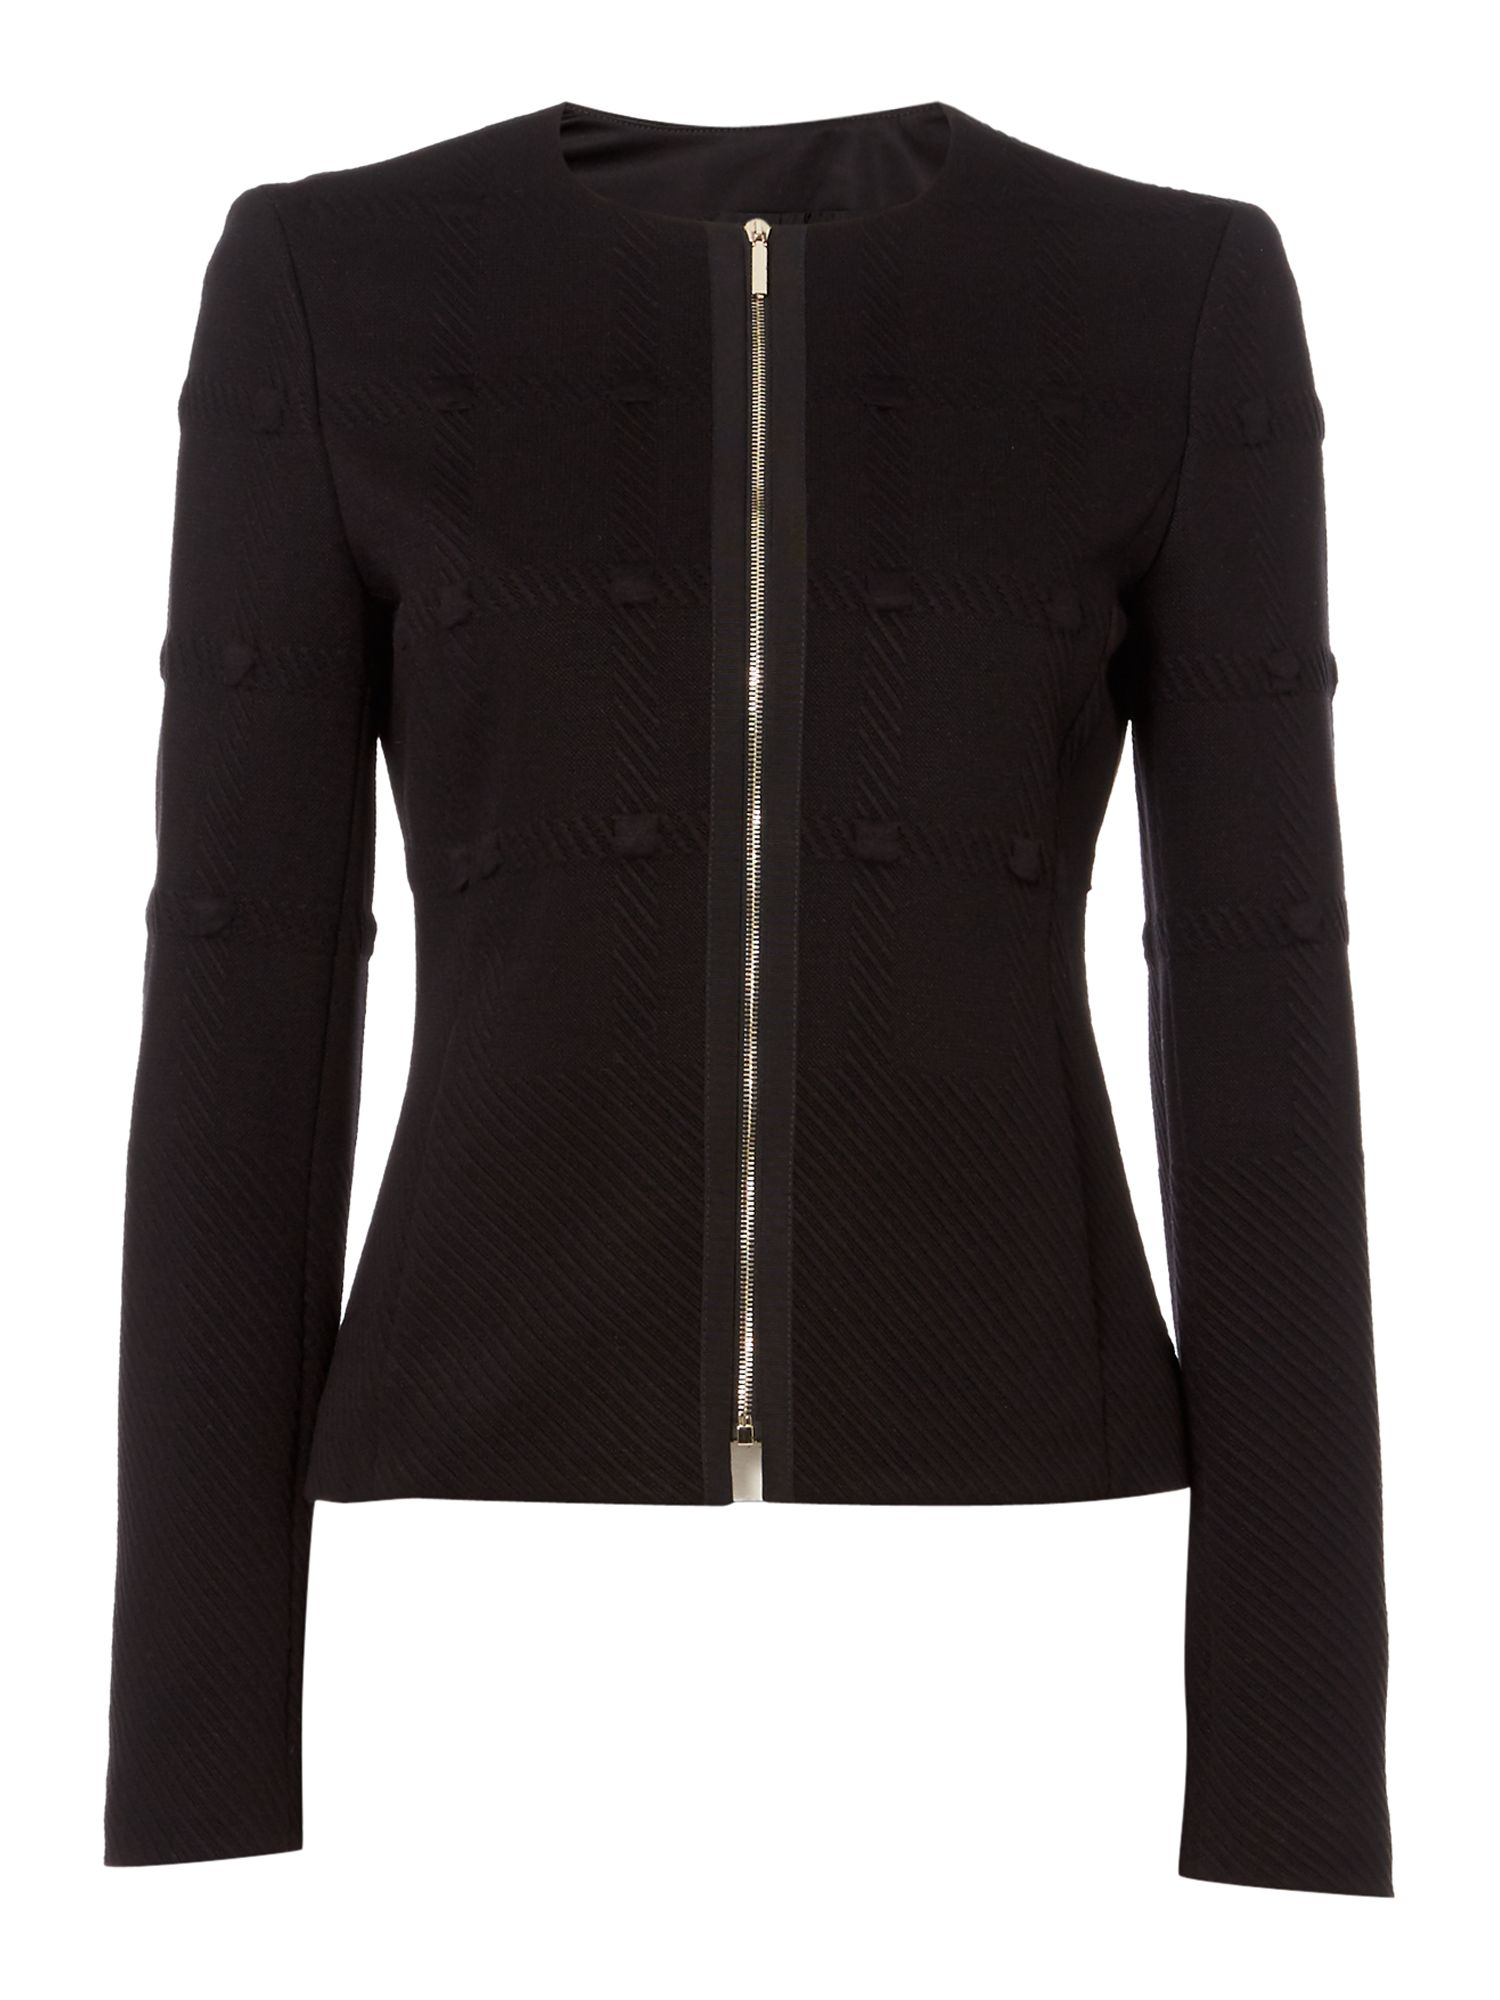 Hugo Boss Kanelli Textured Jacket, Black